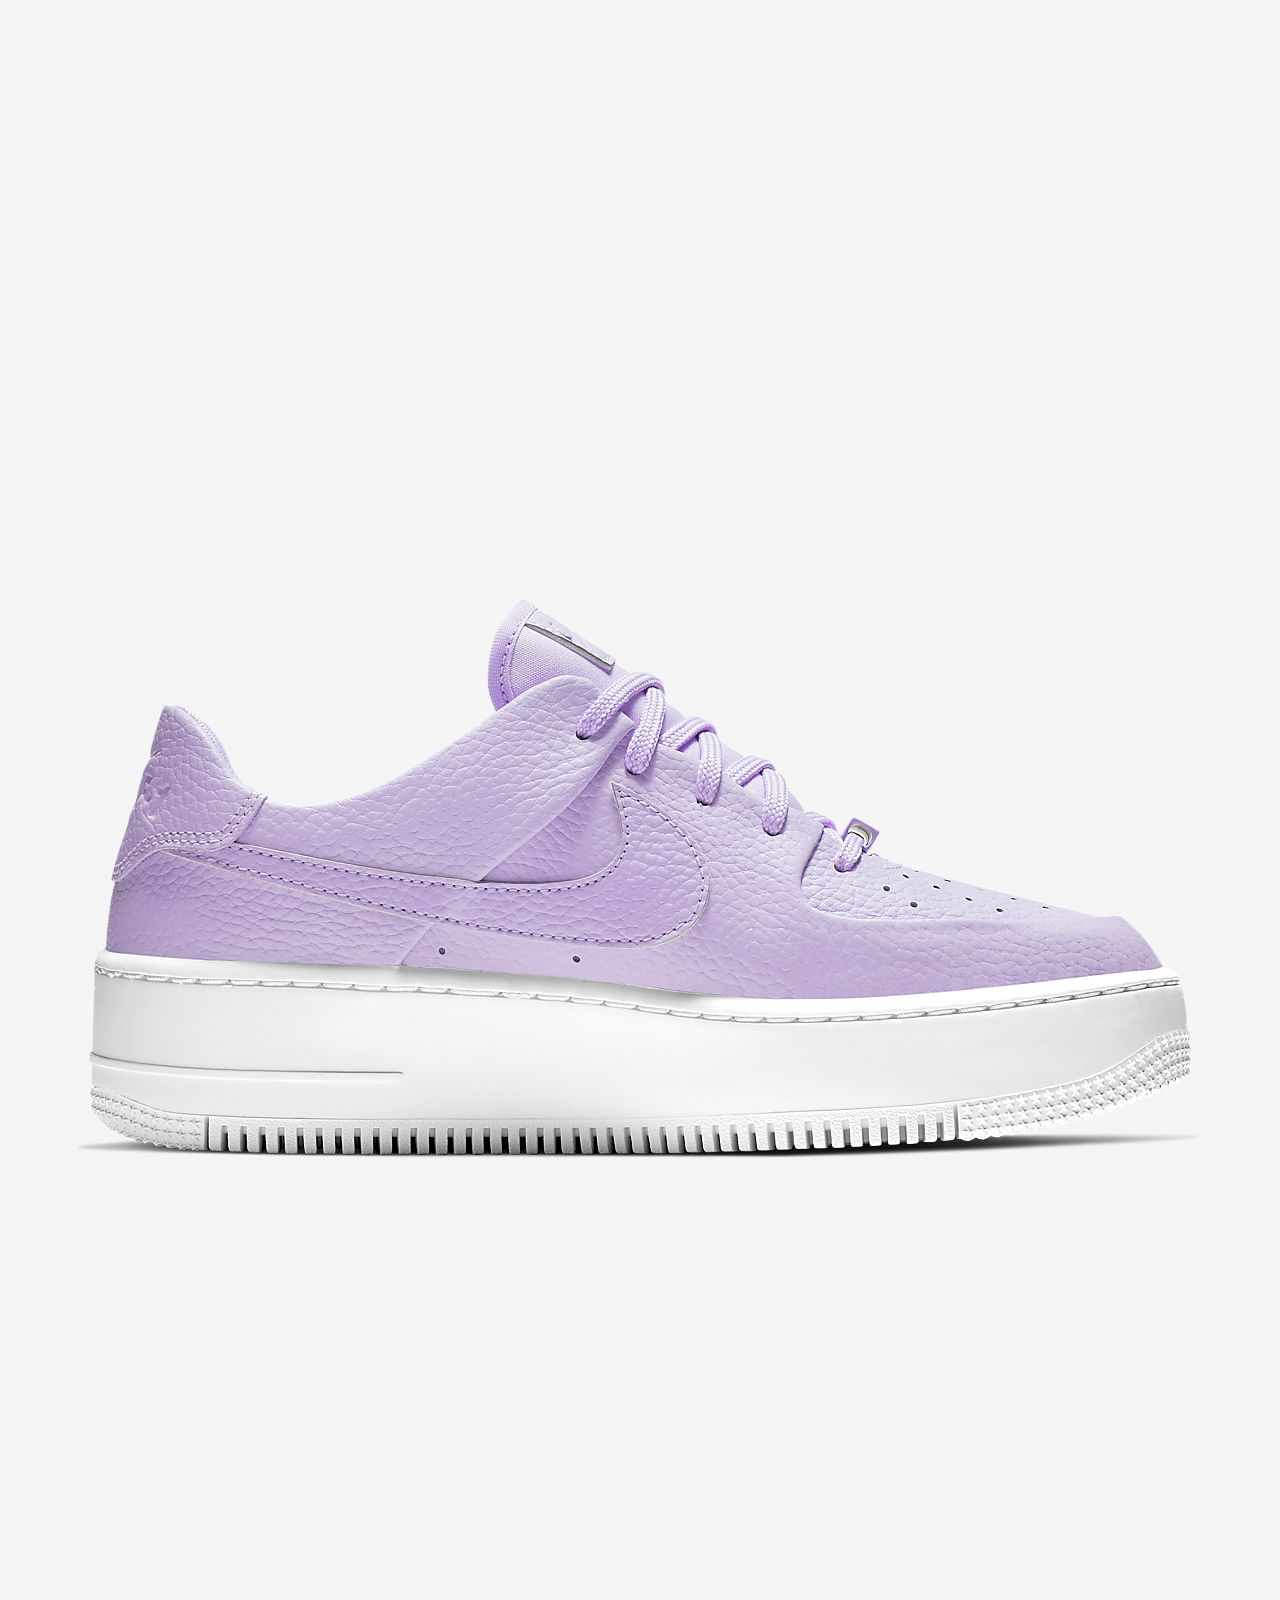 competitive price a0668 990d8 ... Nike Air Force 1 Sage Low Women s Shoe